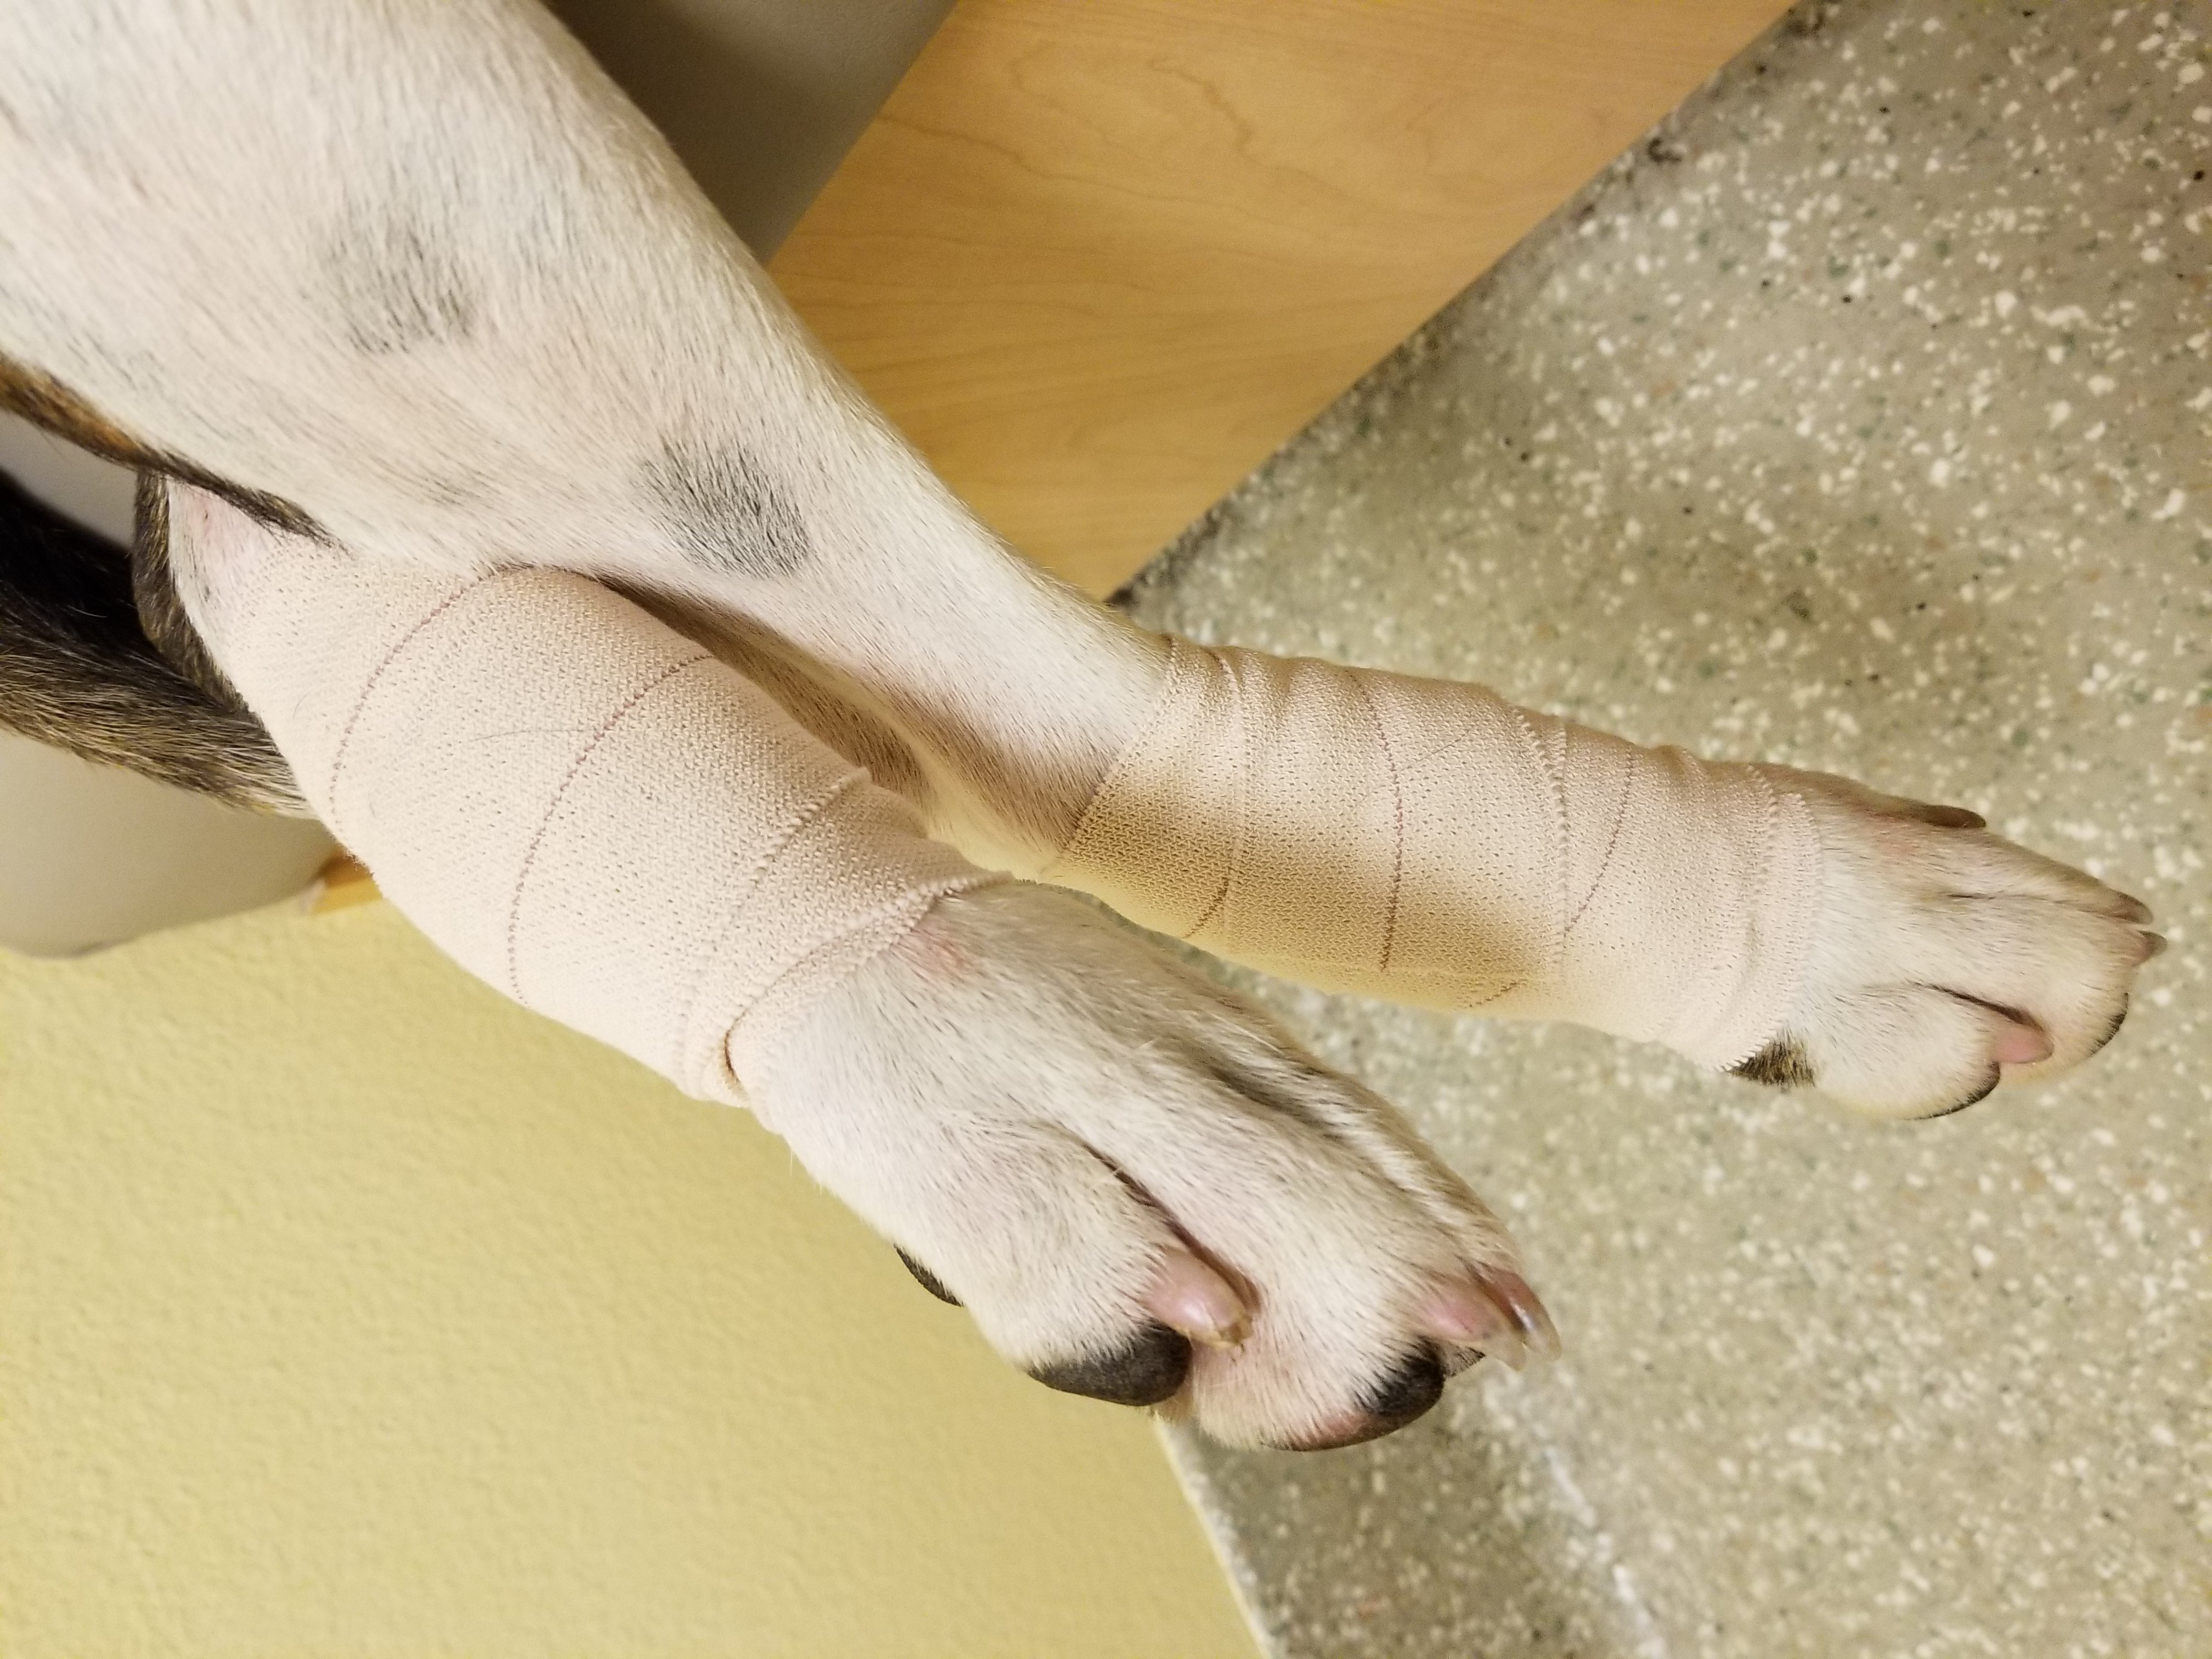 wounded dog legs